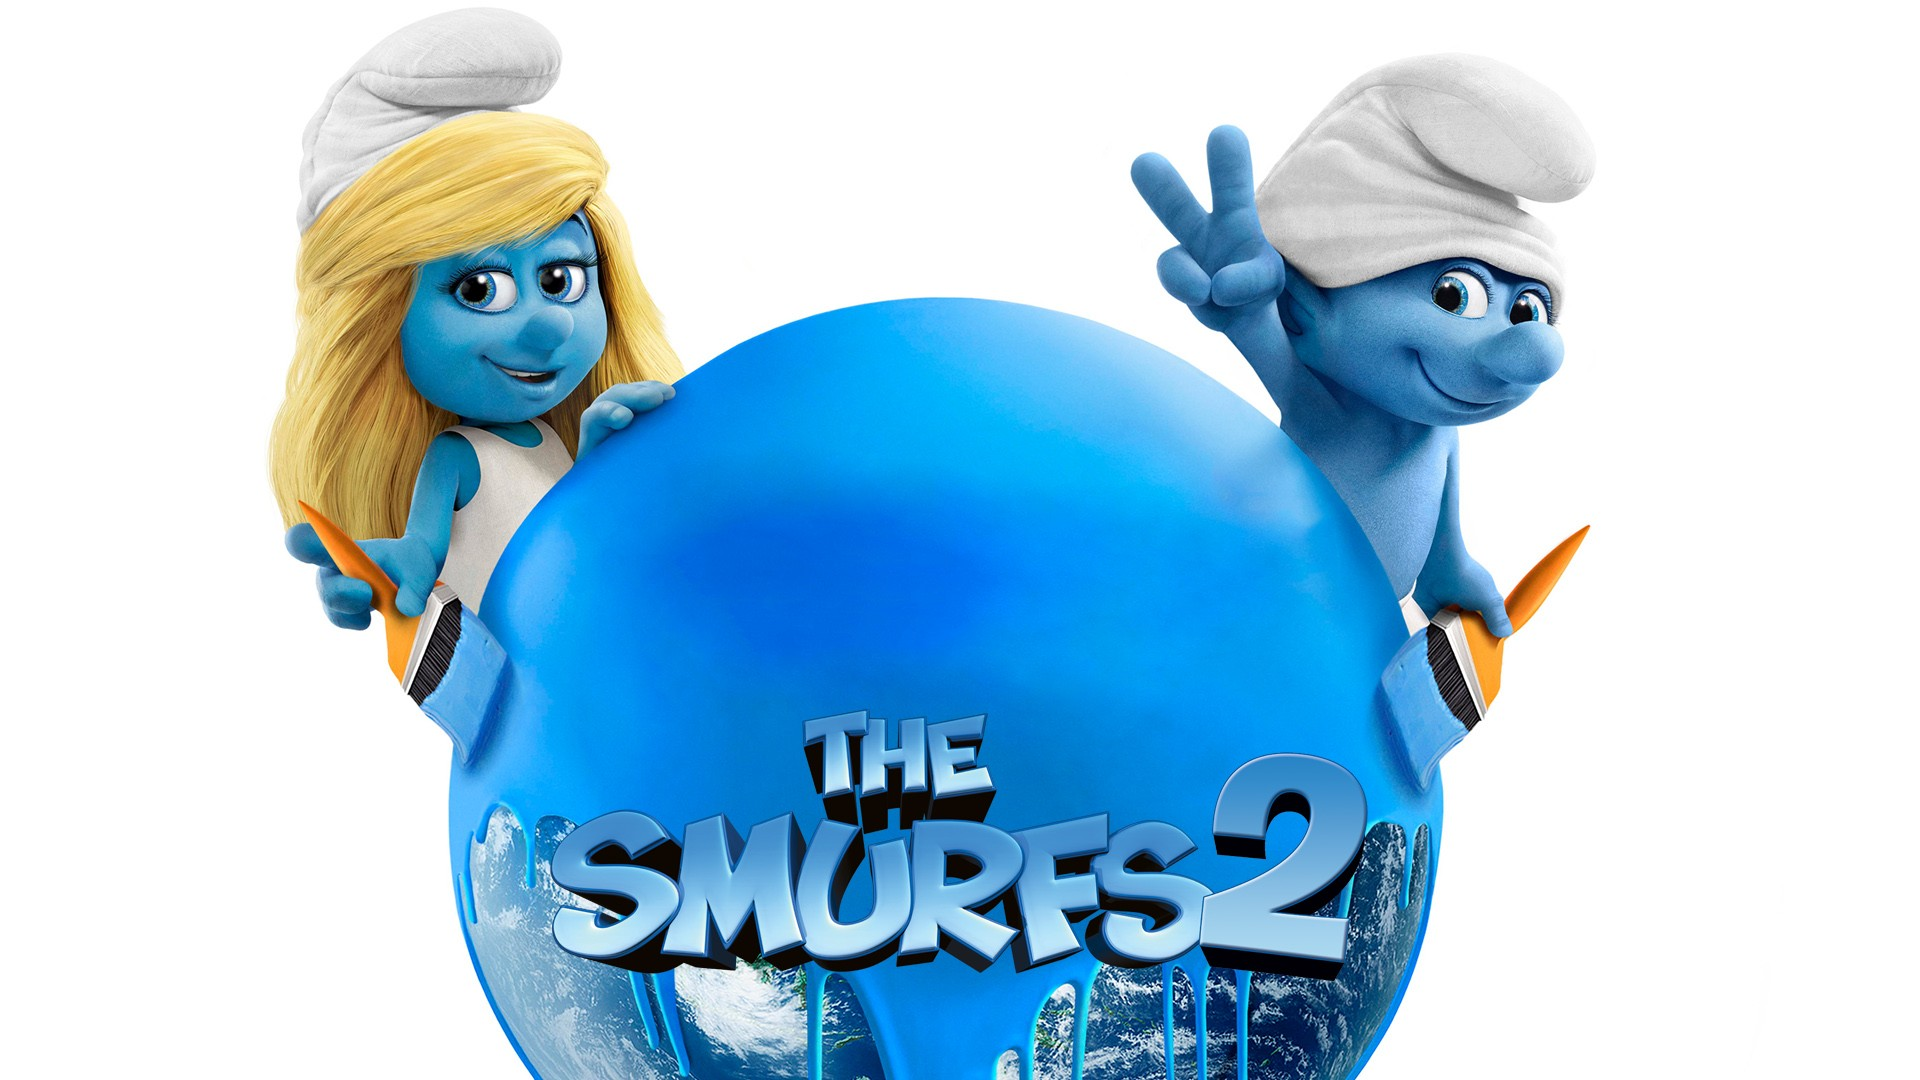 The Smurfs 2 Wallpapers HD Wallpapers ID 12541